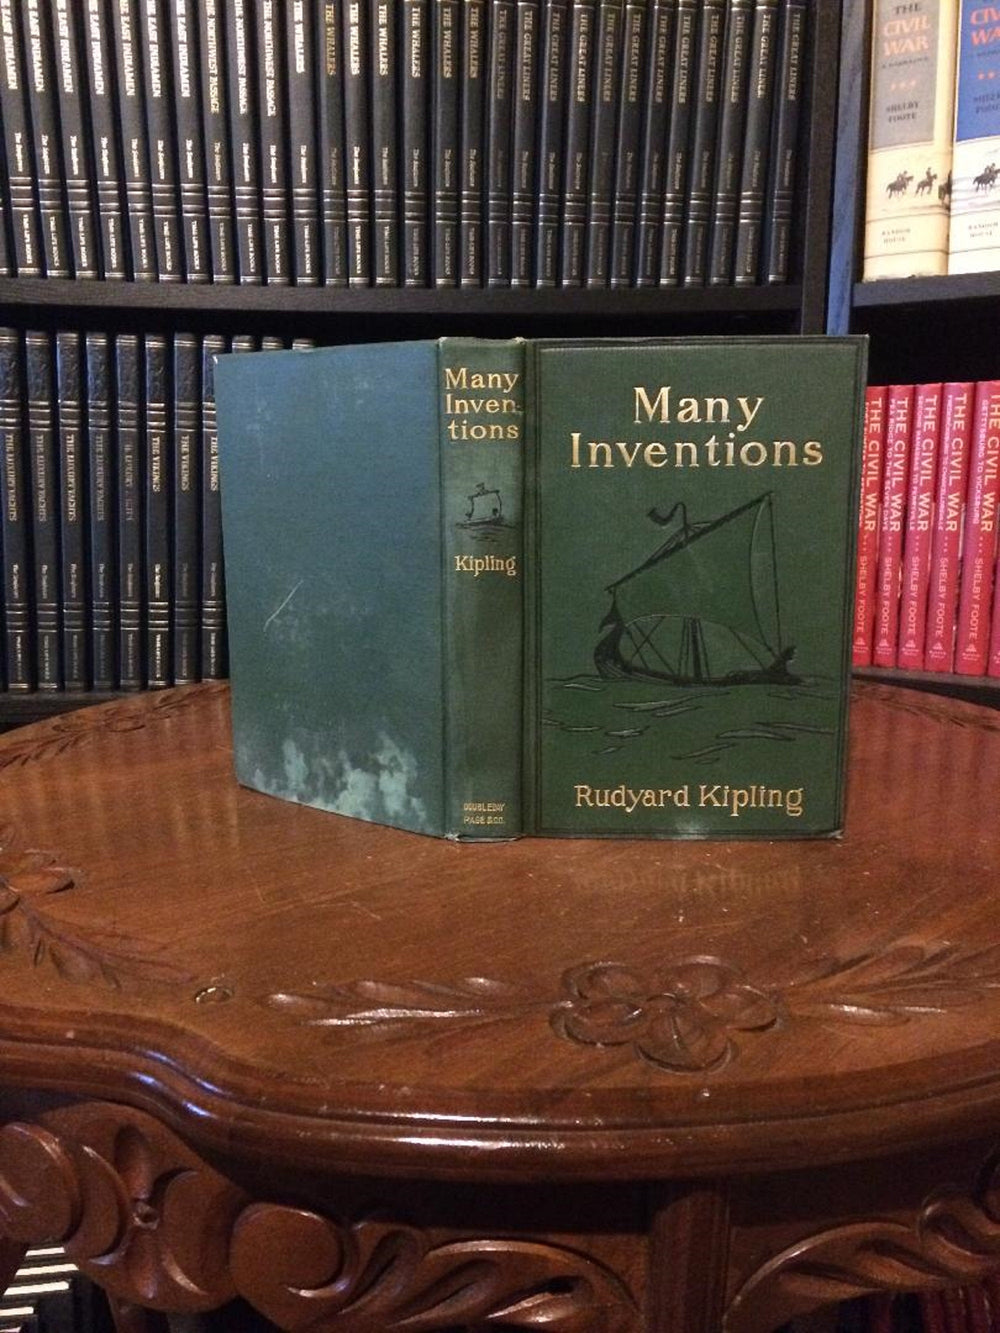 Many Inventions by Rudyard Kipling 1908